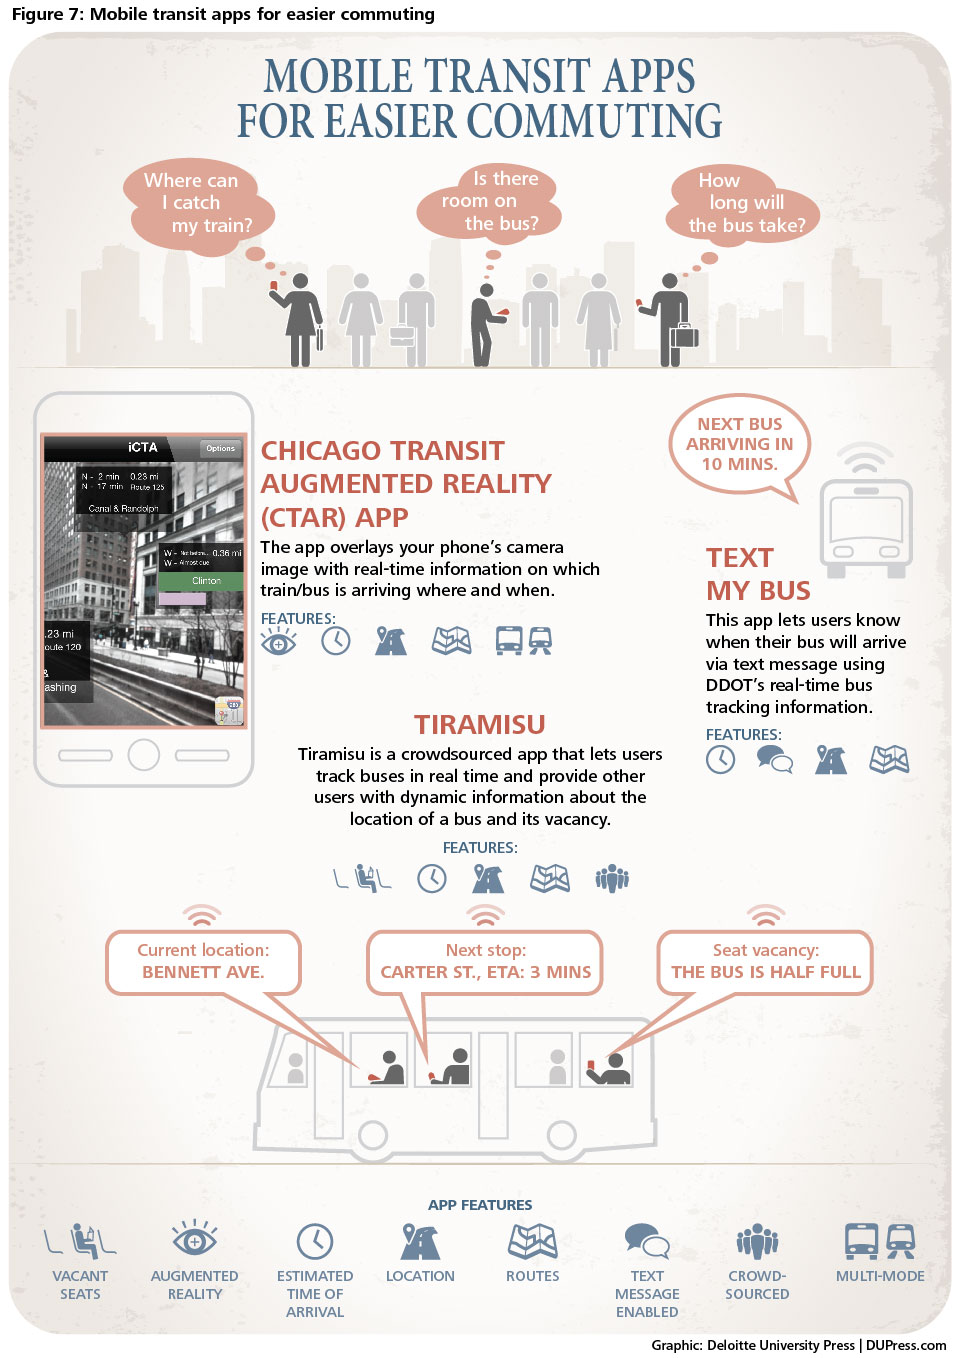 Figure 7 - Mobile apps help commuting